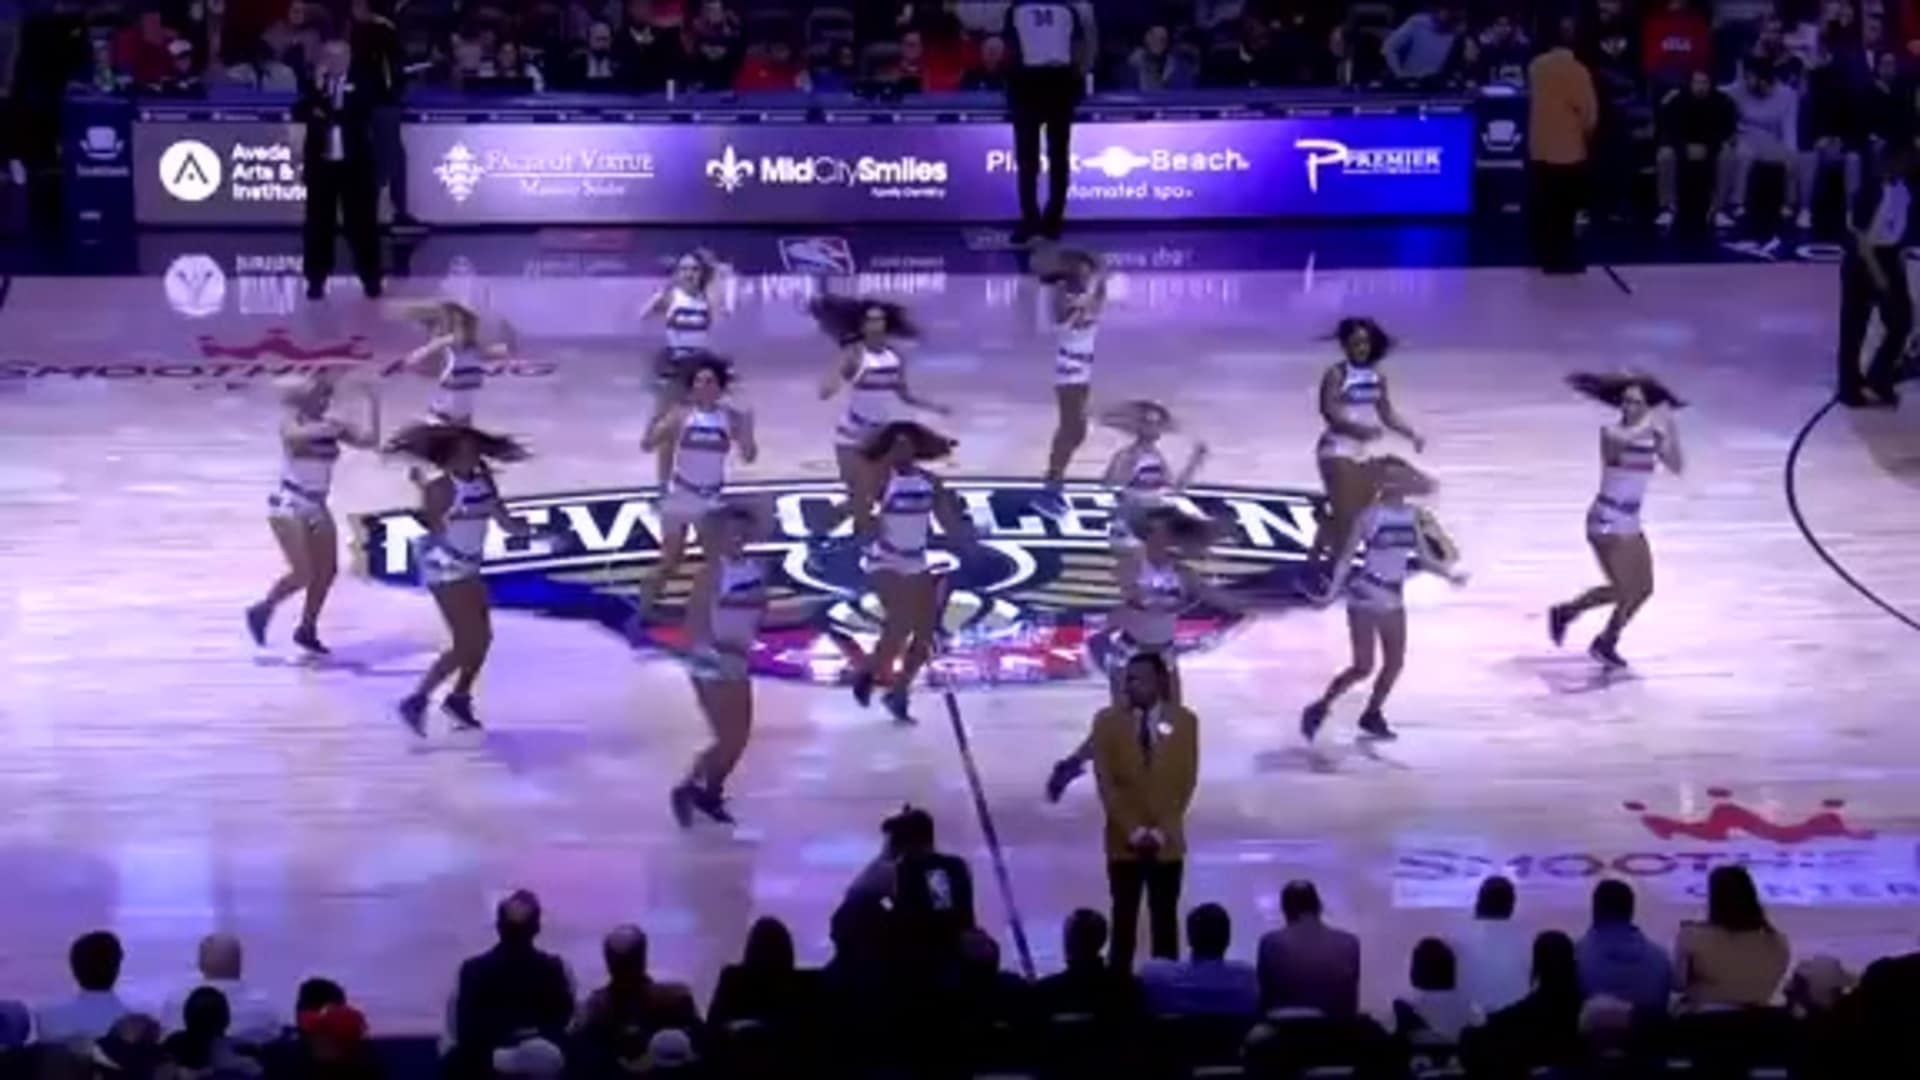 Entertainment: Pelicans Dance Team 2nd quarter performance - January 8 vs. Chicago Bulls